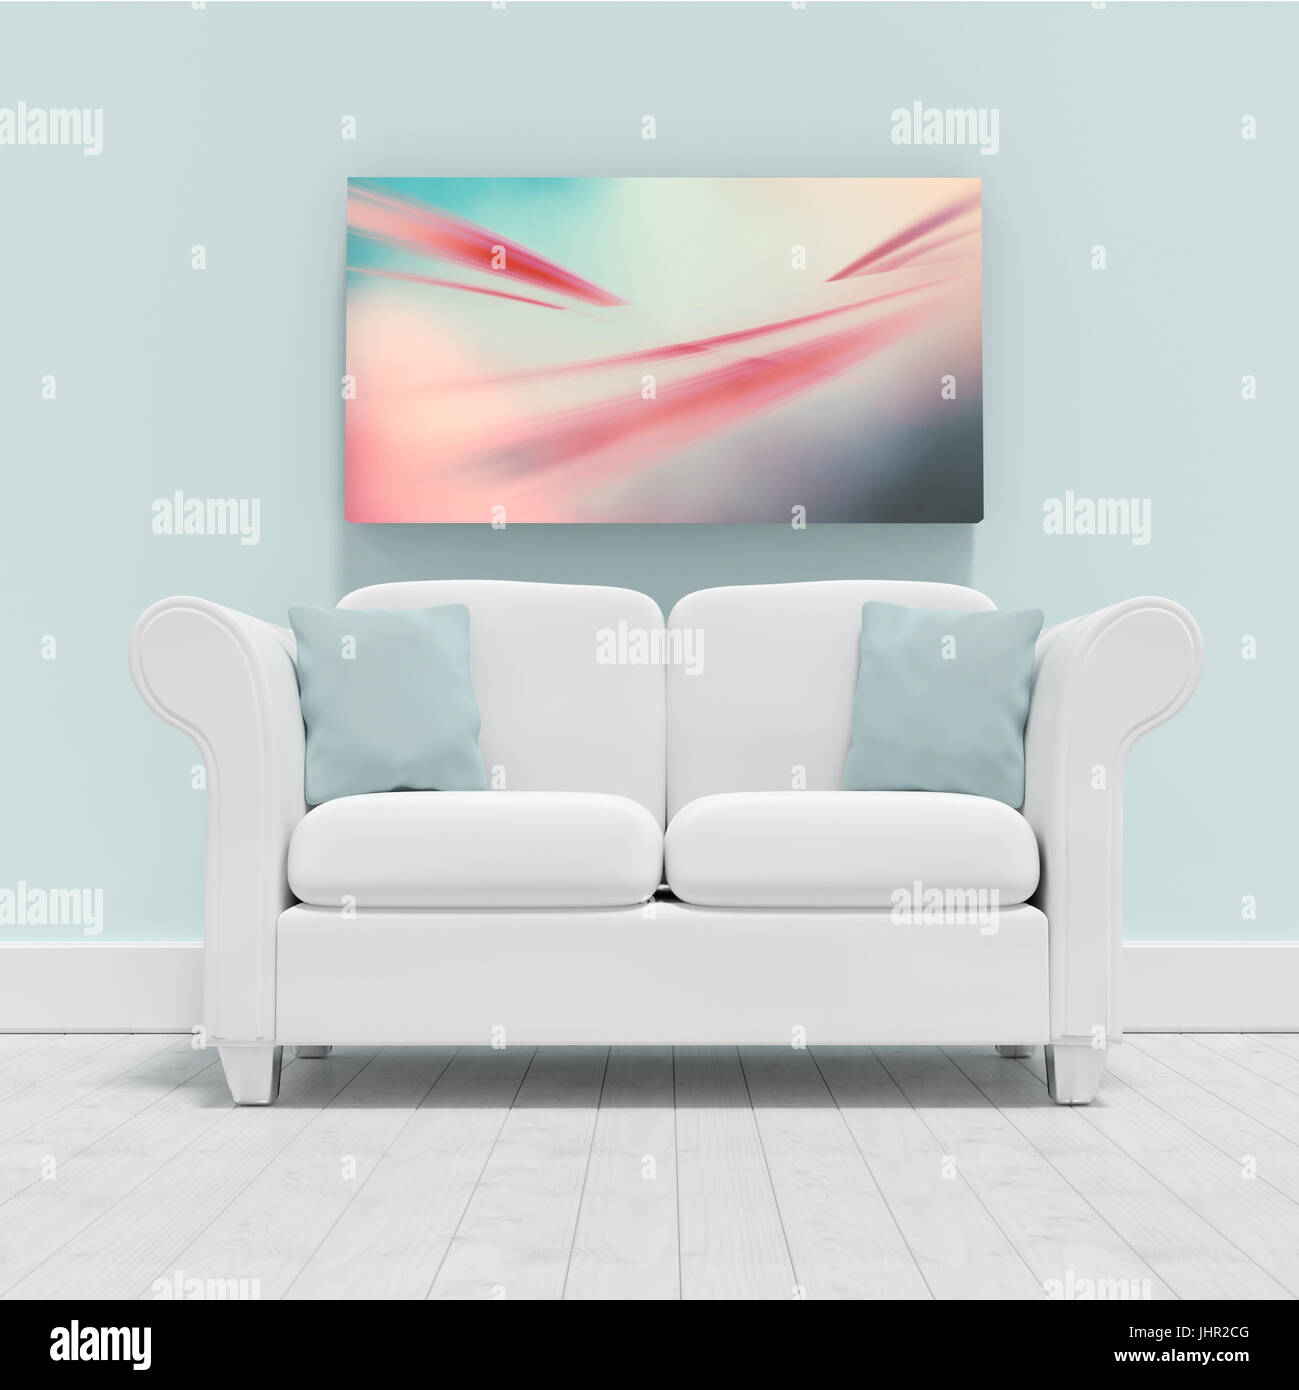 Empty couch against blank picture frame  against abstract background Stock Photo